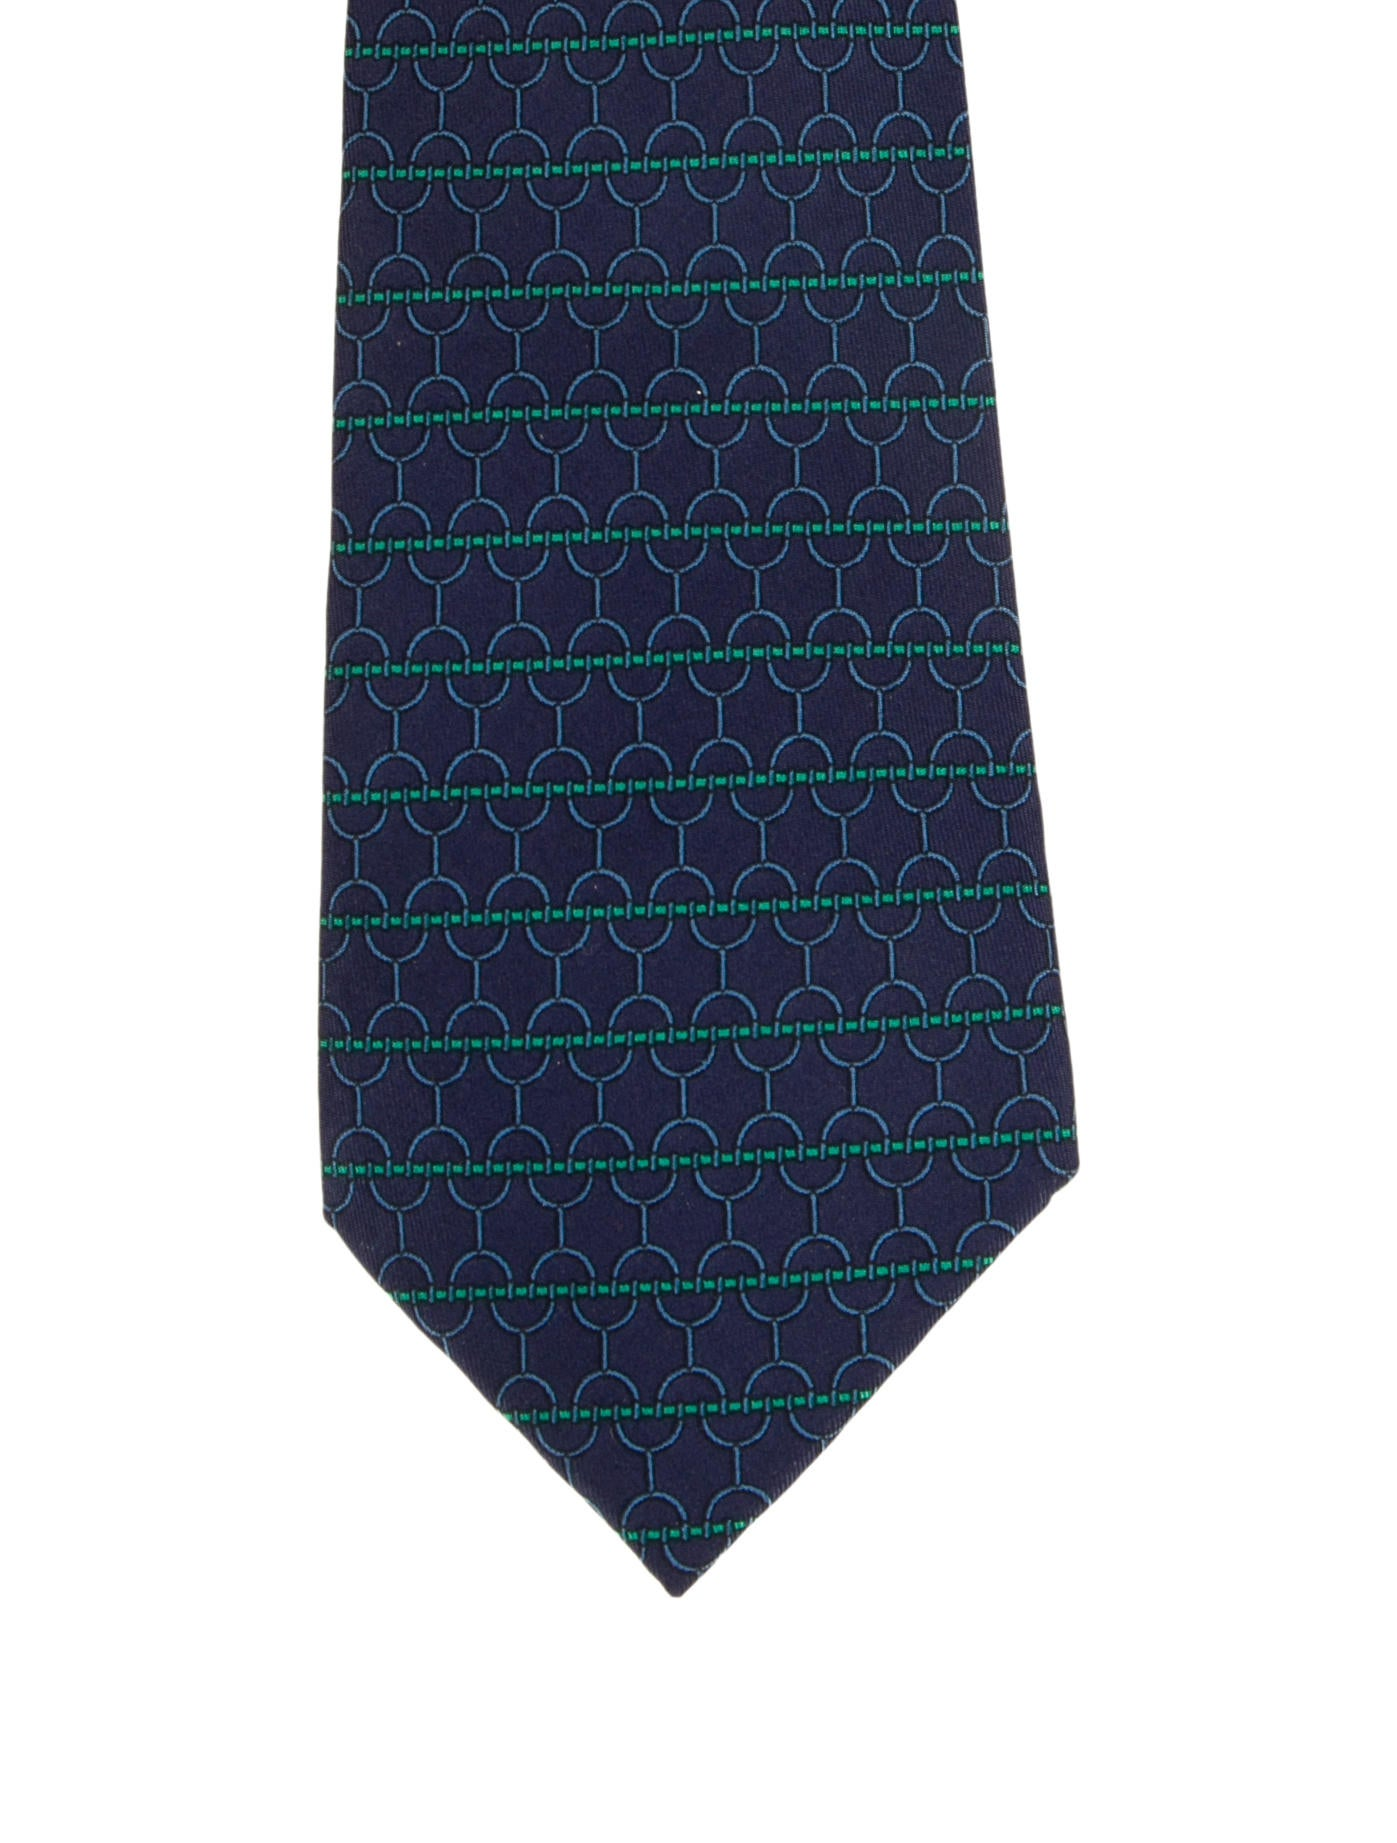 Hermès Printed Silk Tie - Suiting Accessories -           HER242649 | The RealReal